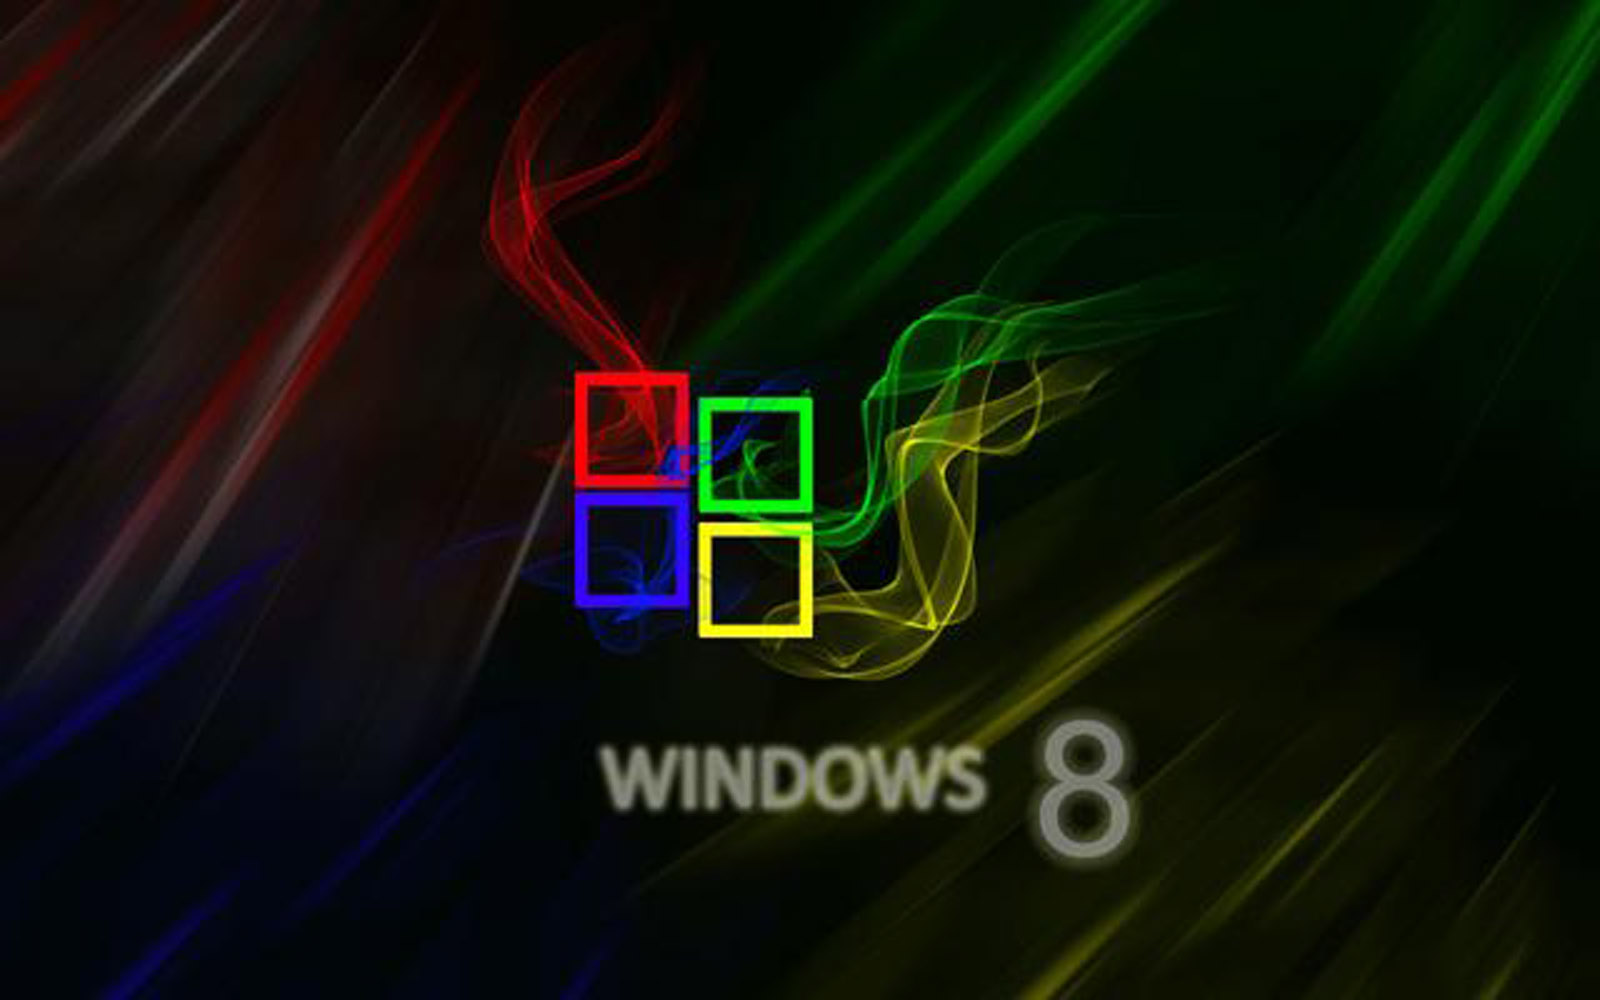 Hd Wallpapers Windows 8 Wallpapers